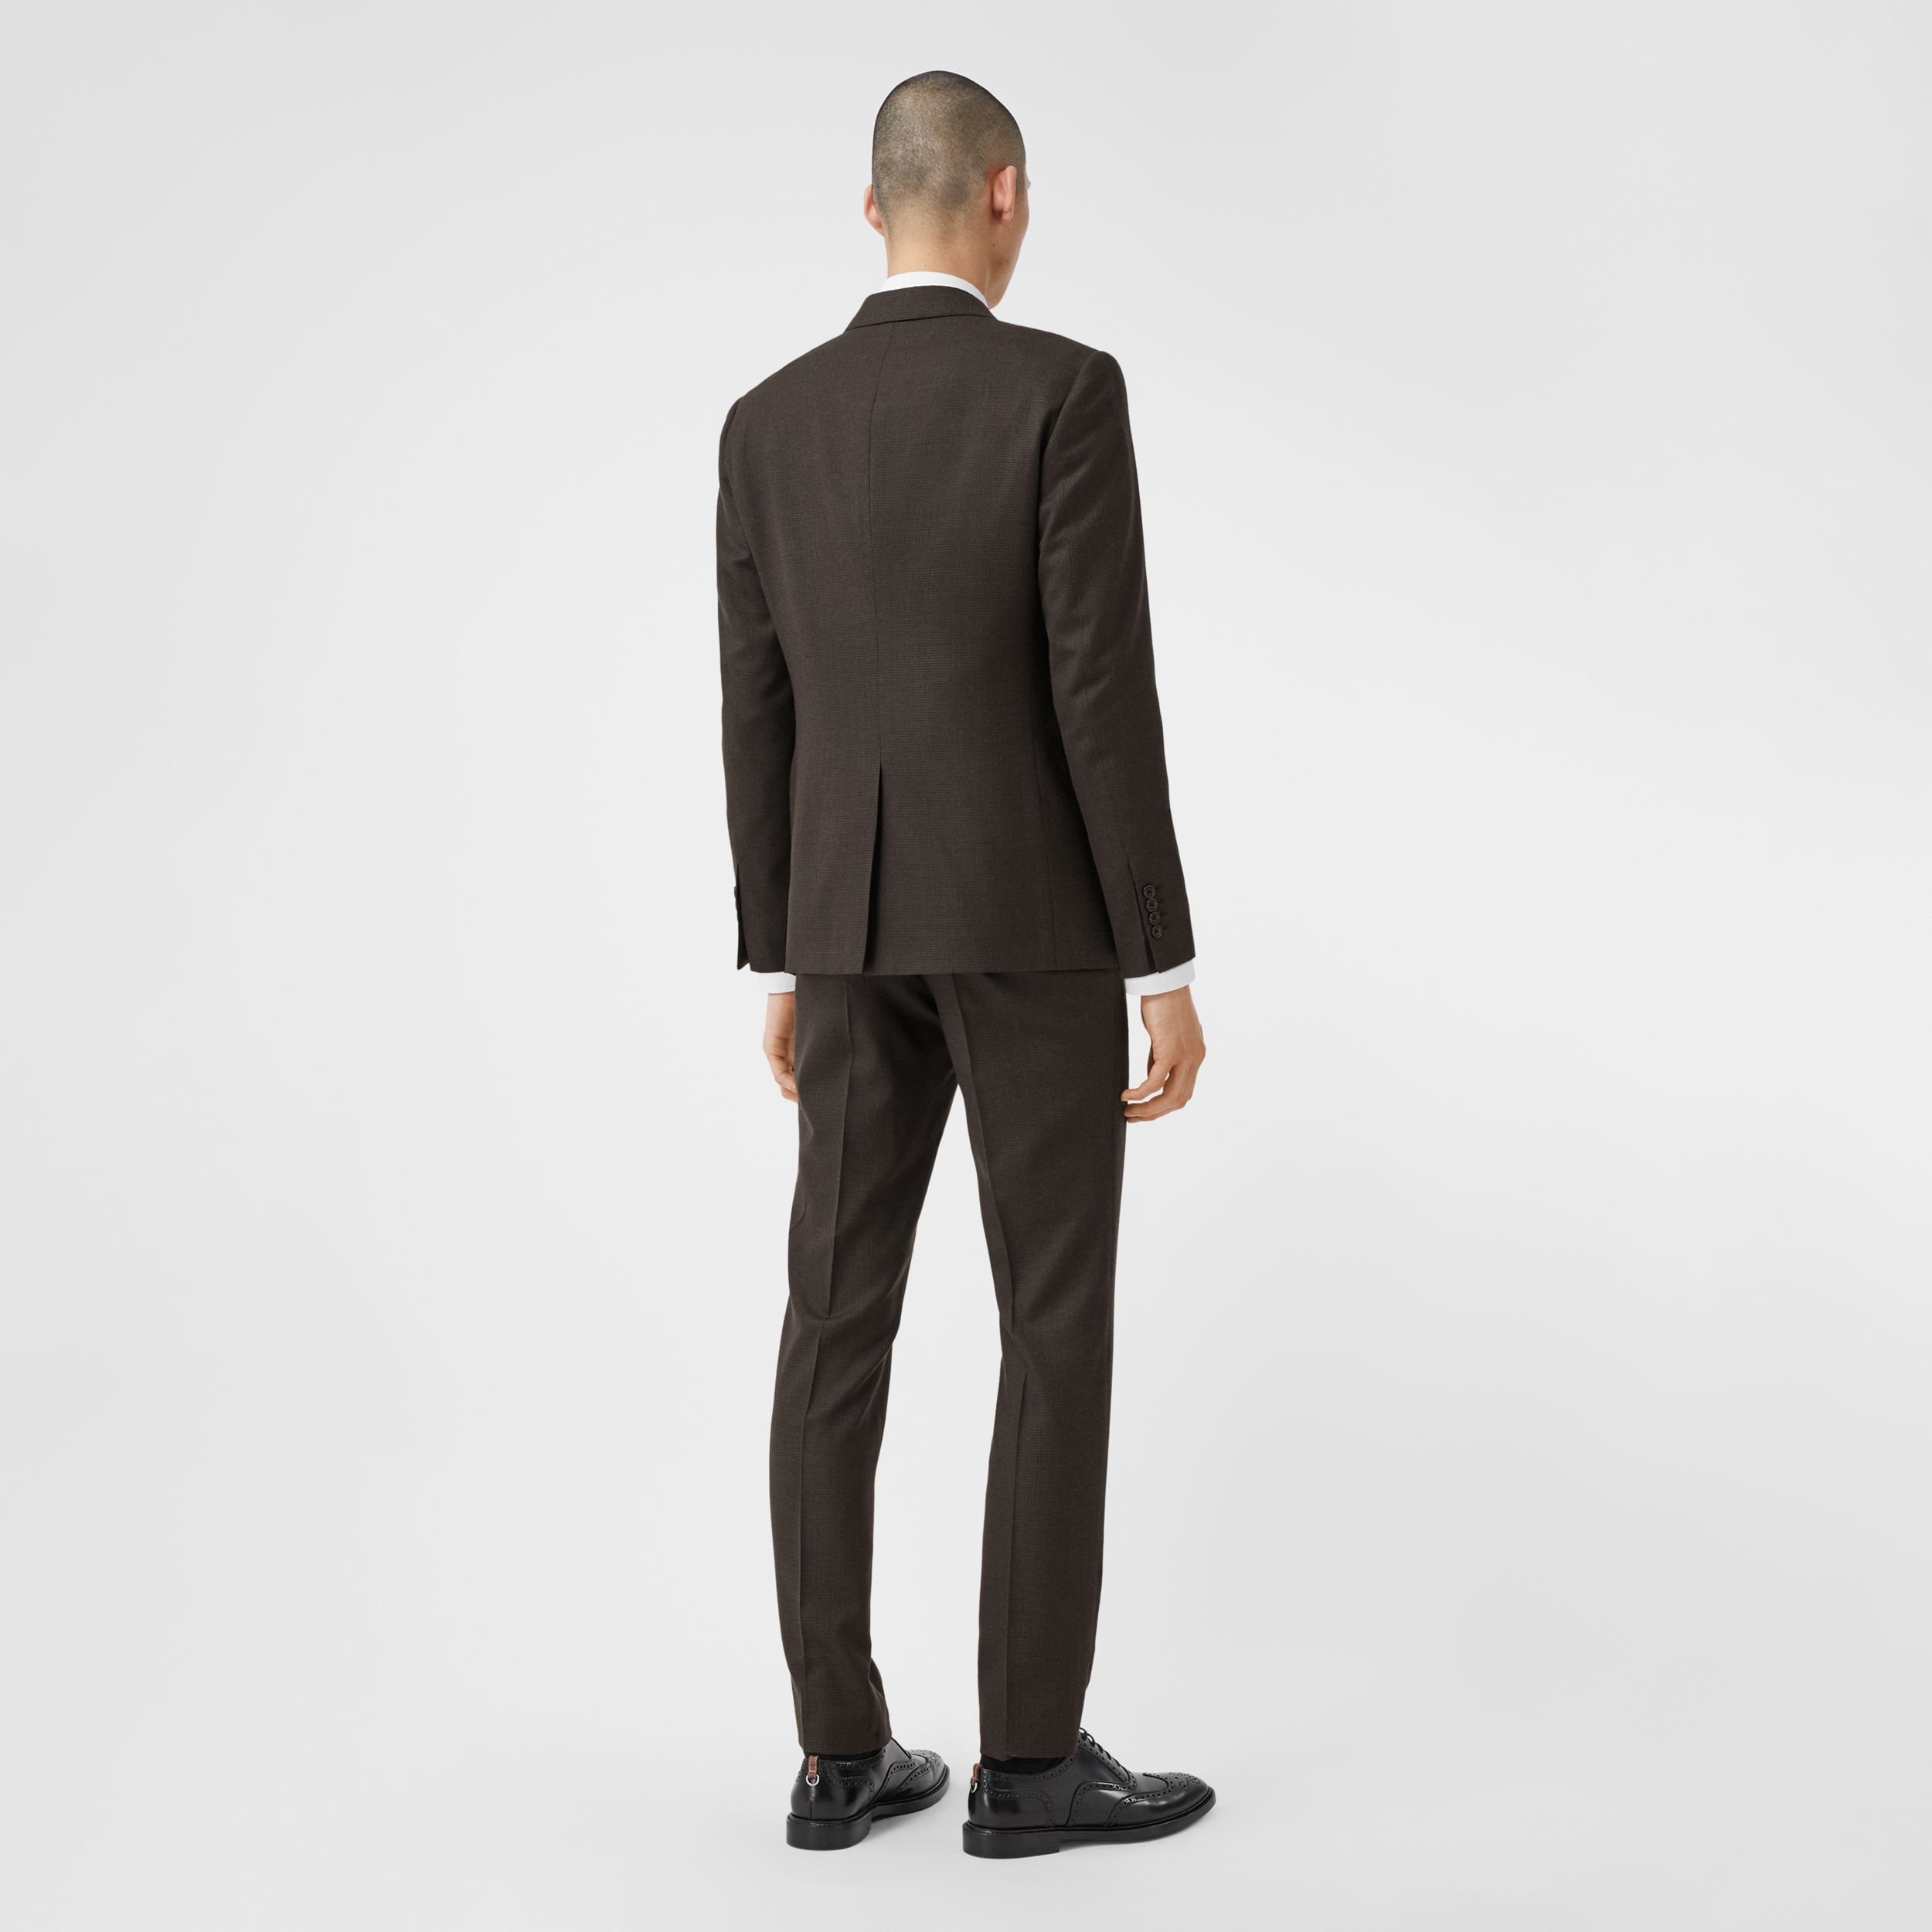 Slim Fit Puppytooth Check Wool Suit in Dark Brown - Men | Burberry Australia - 3